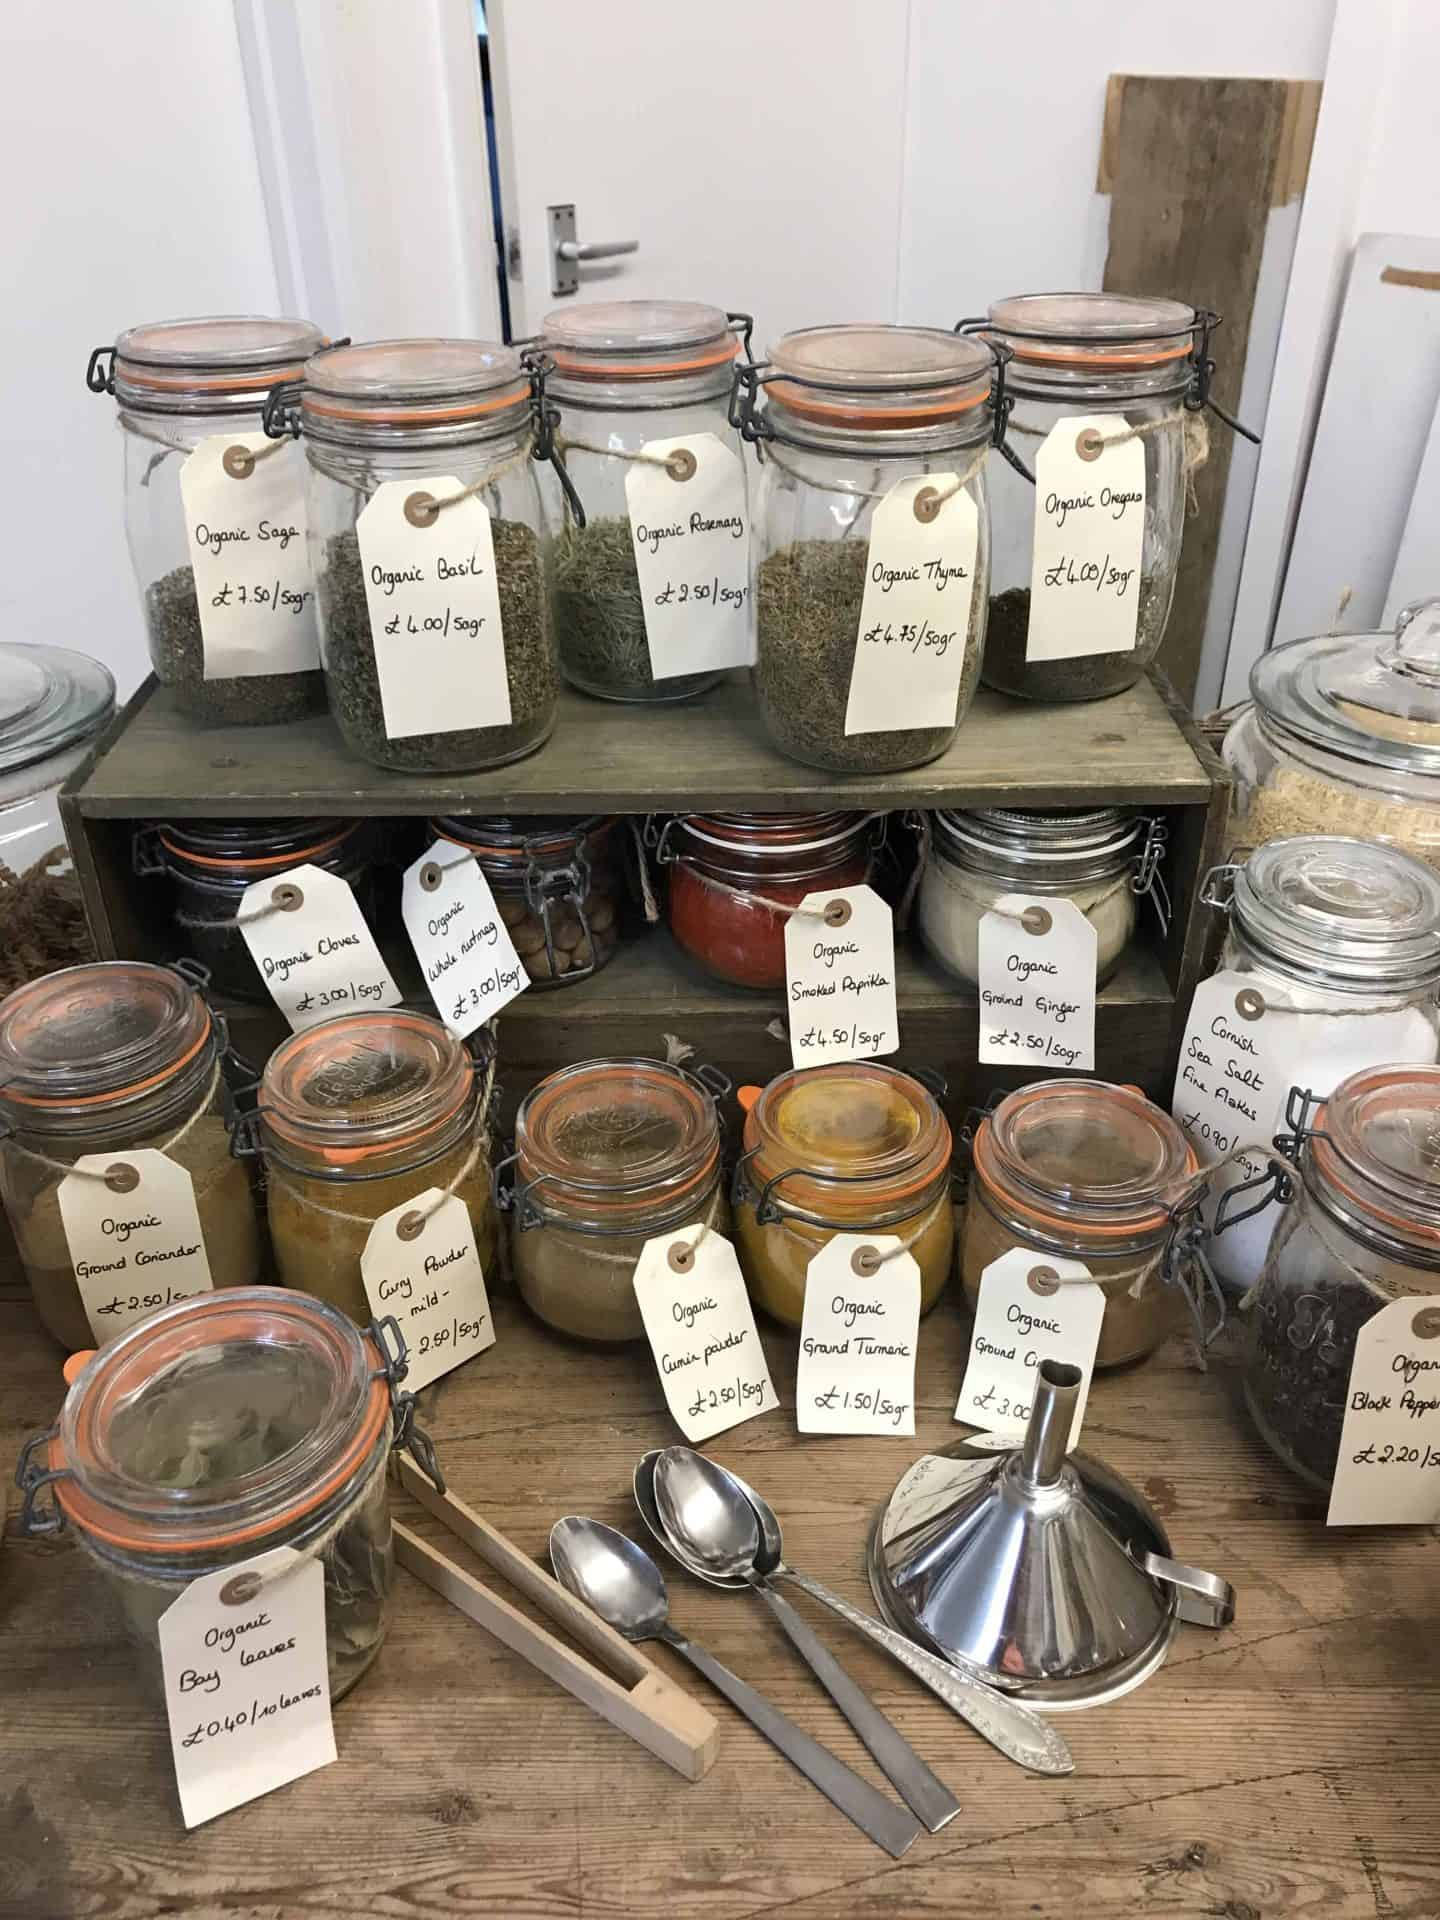 Zero waste shopping at My Refill Market pop up sustainable store in Stony Stratford